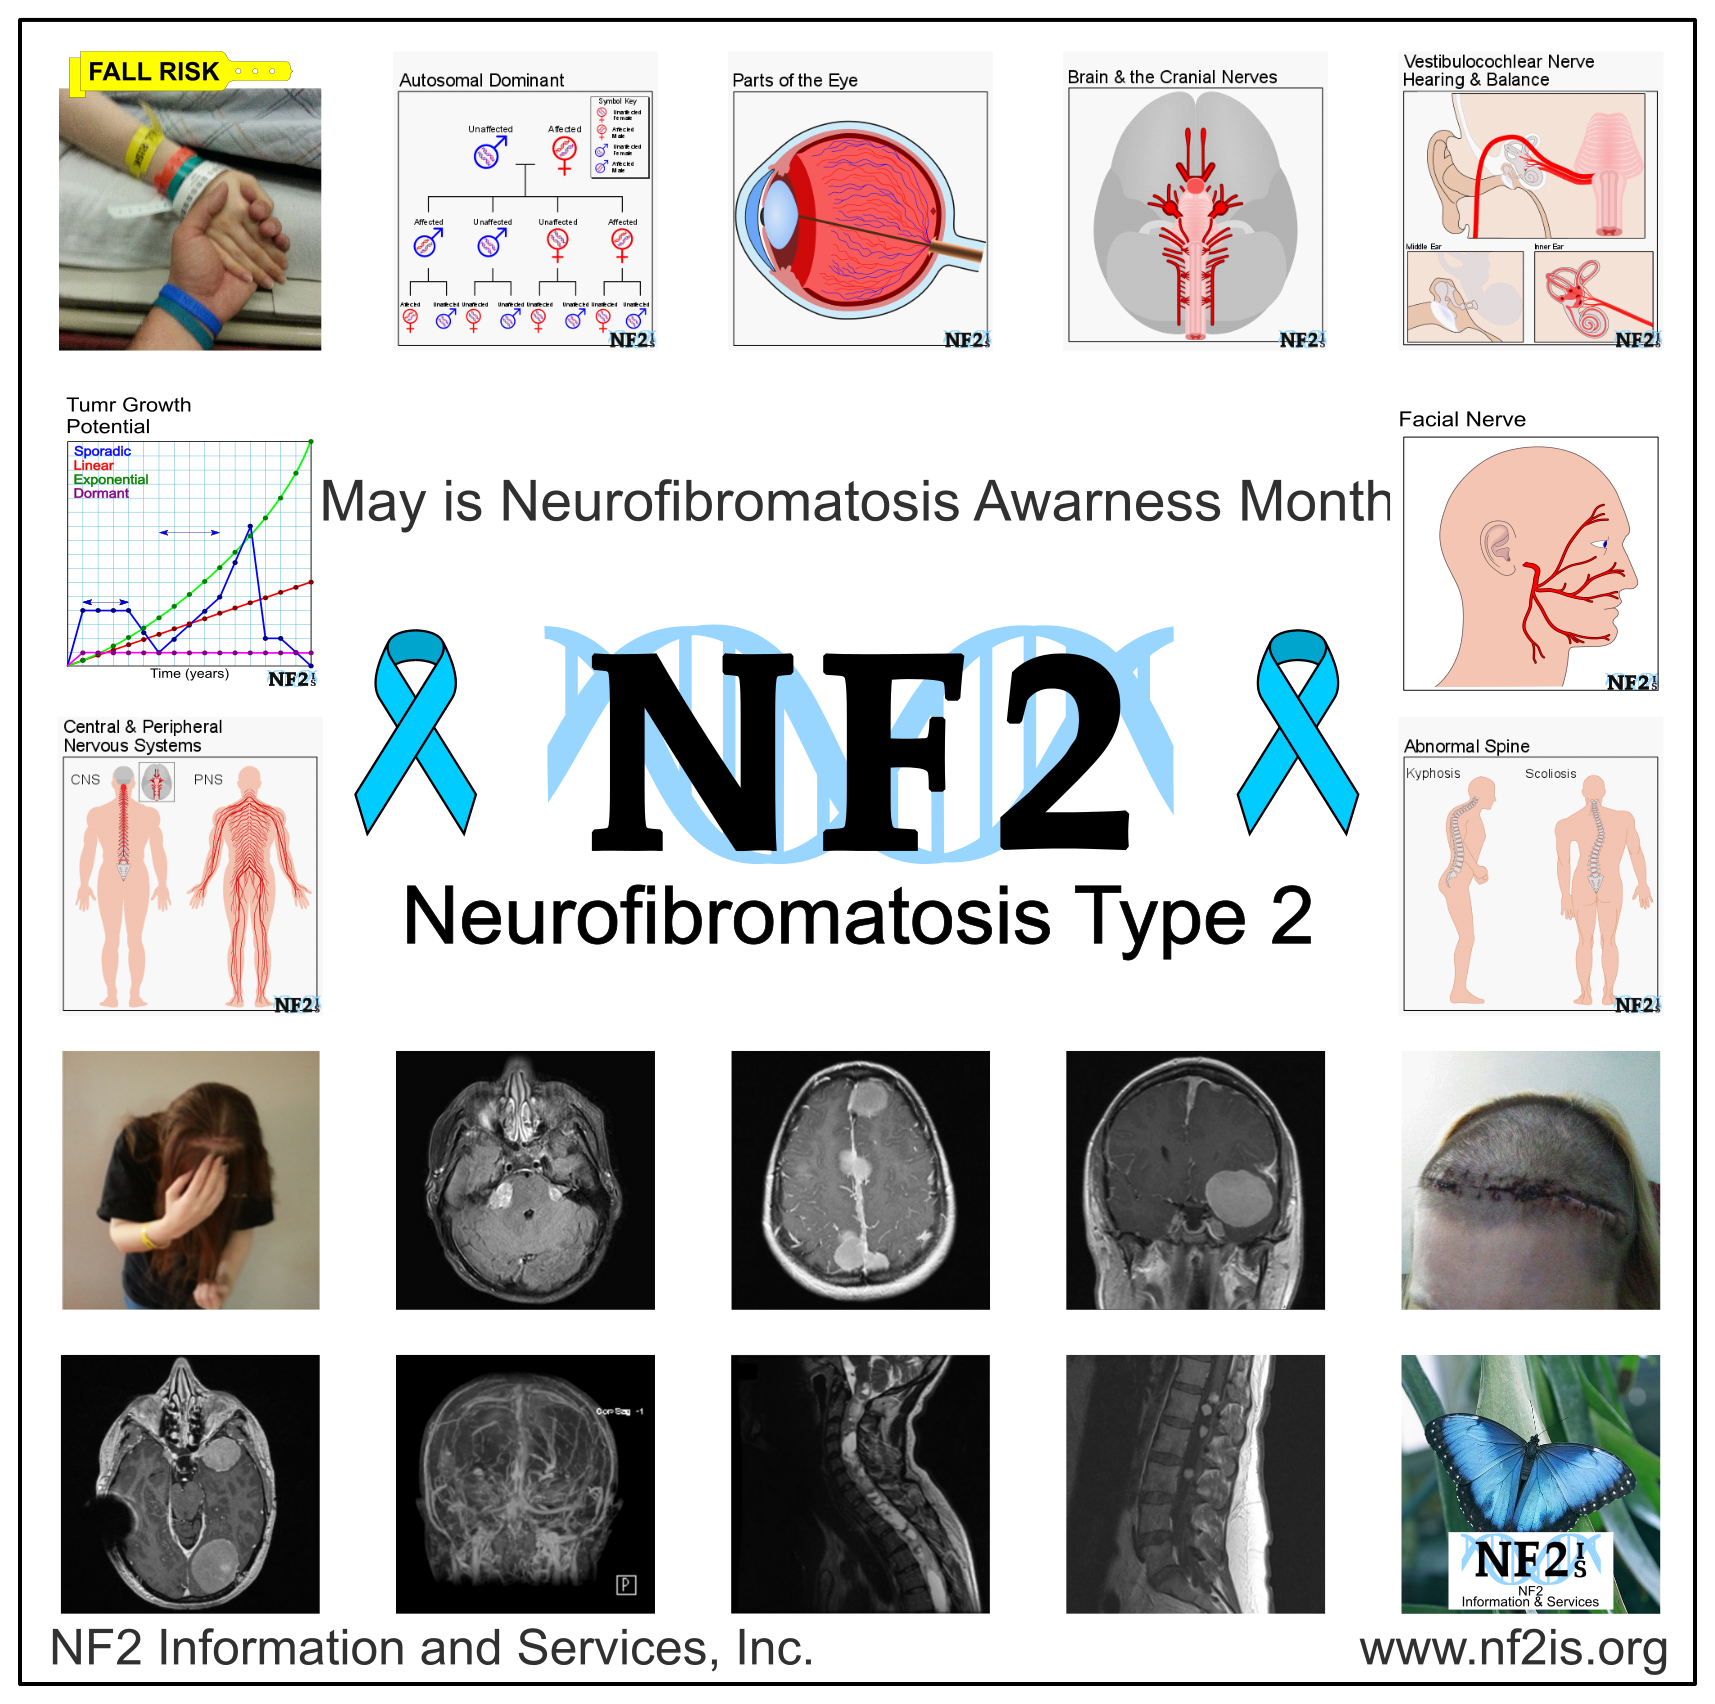 Neurofibromatosis Type 2, NF2, MRI, Spine, Brain, genetics, tumor growth, balance, hands, butterfly